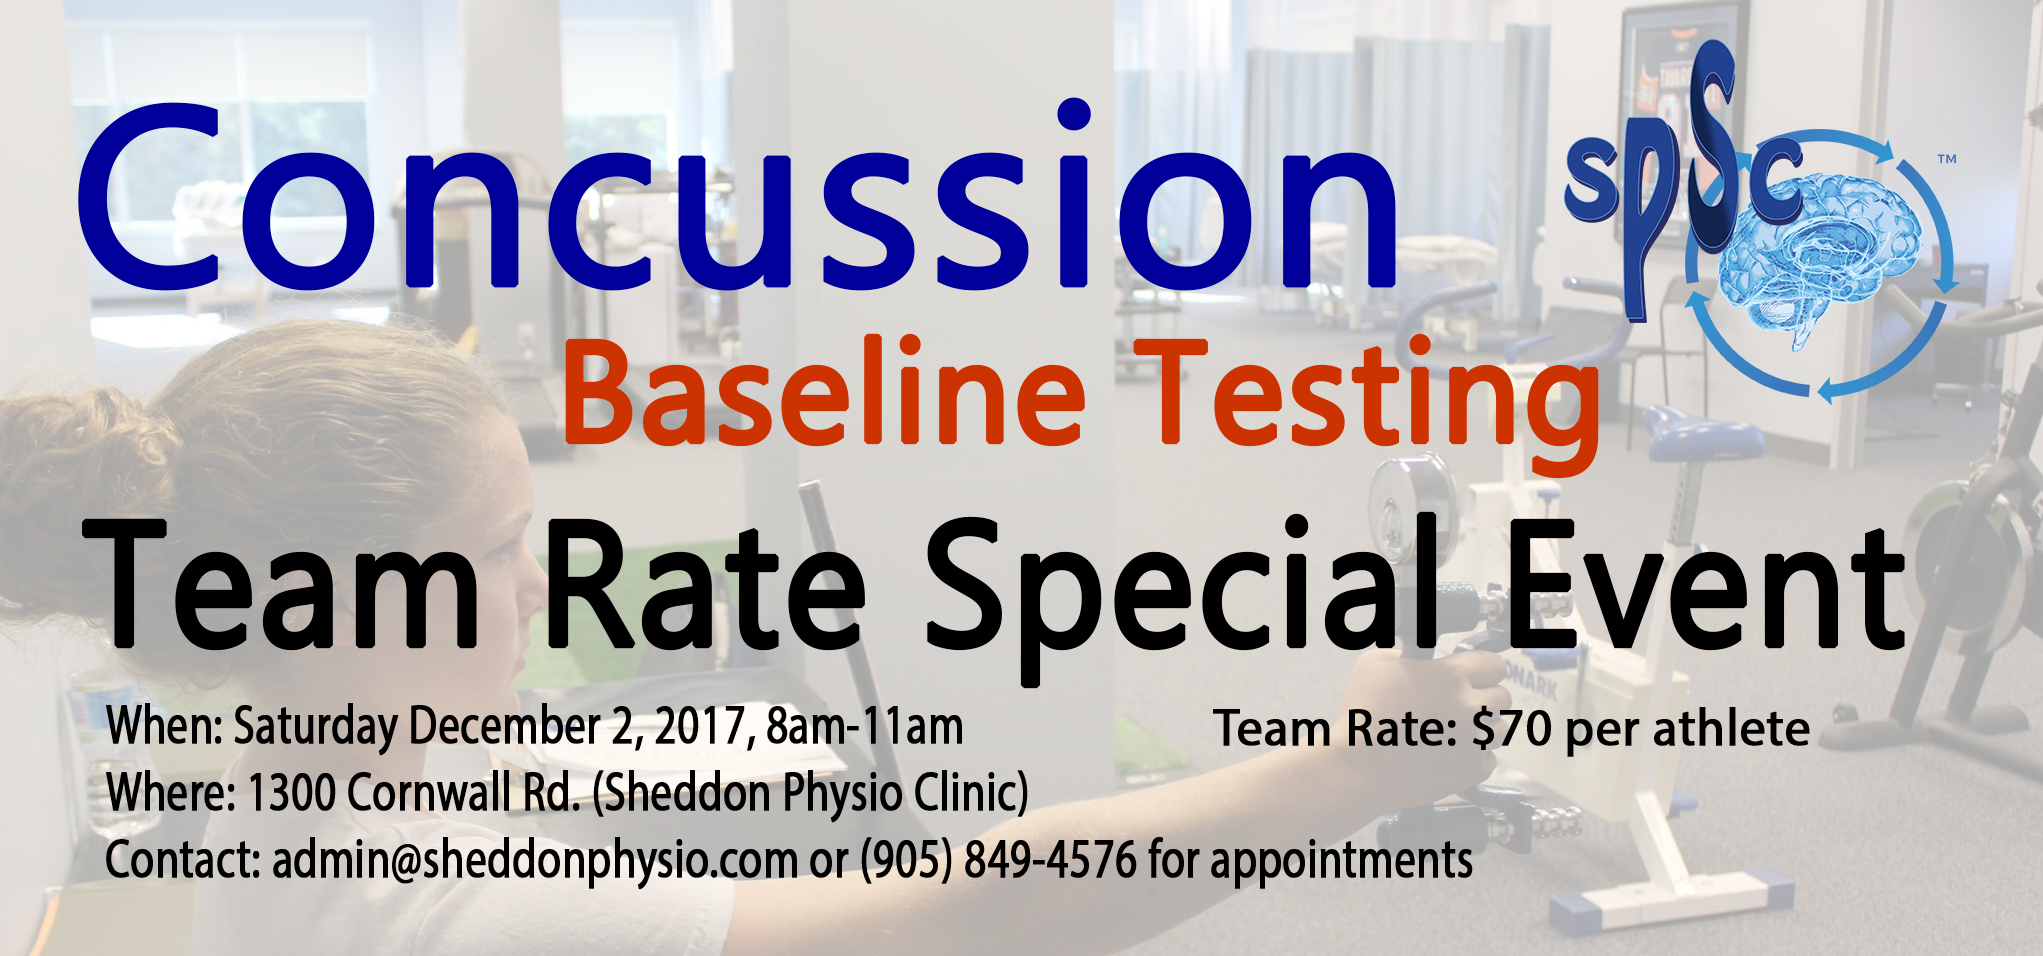 SPECIAL EVENT: Concussion Baseline Testing